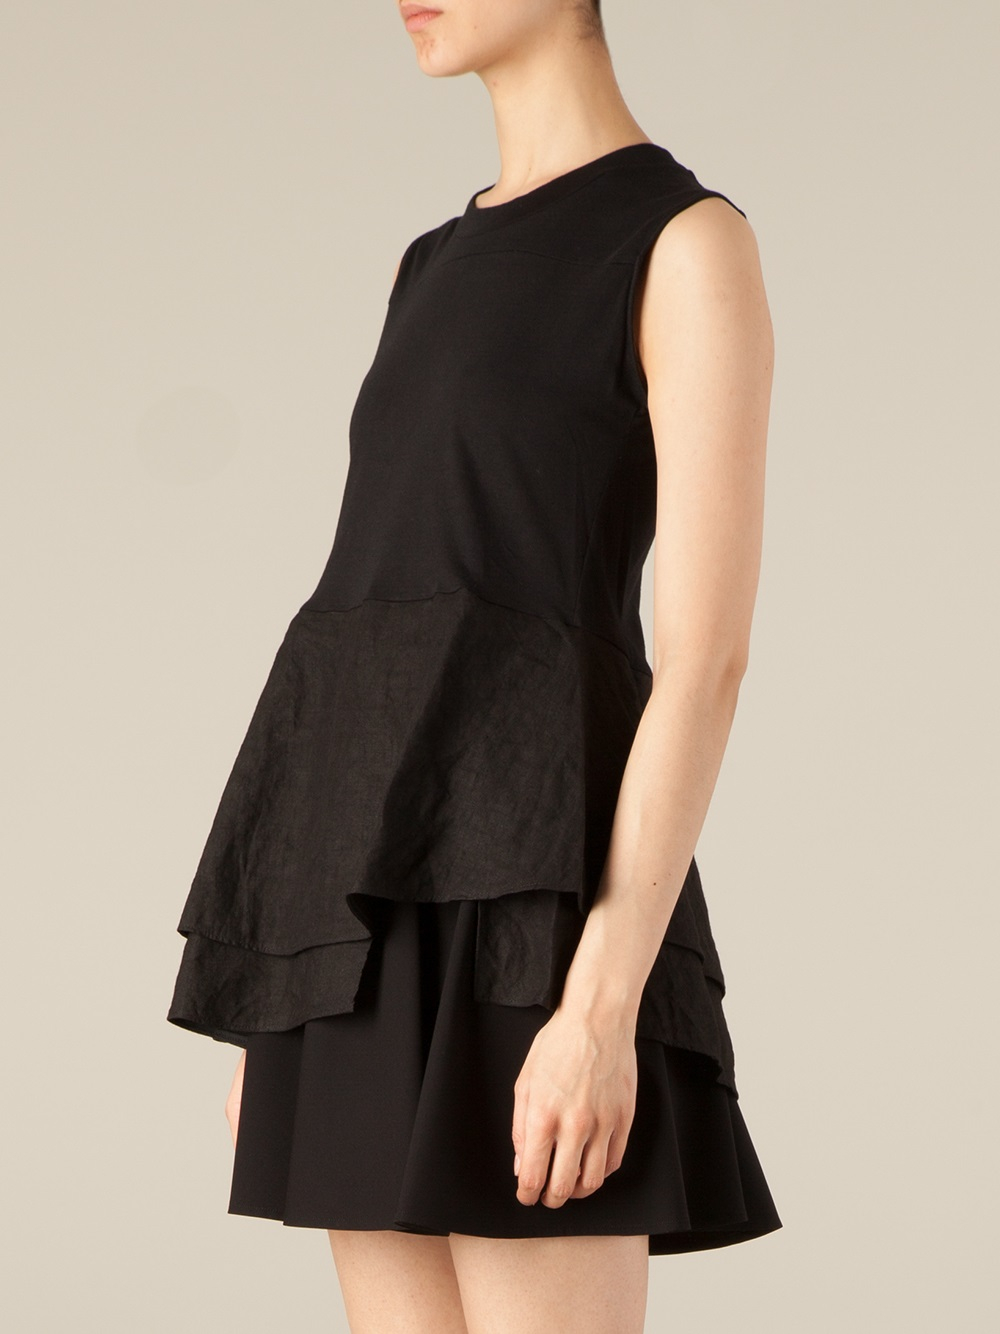 linen dries with Marni Peplum Top Black 1 on Make Home Eco Friendly together with Lightweight Navy Blazers Spring 2016 likewise Flax Linum Usitatissimum besides Microfiber Underwear For Men in addition Marchanson blogspot.